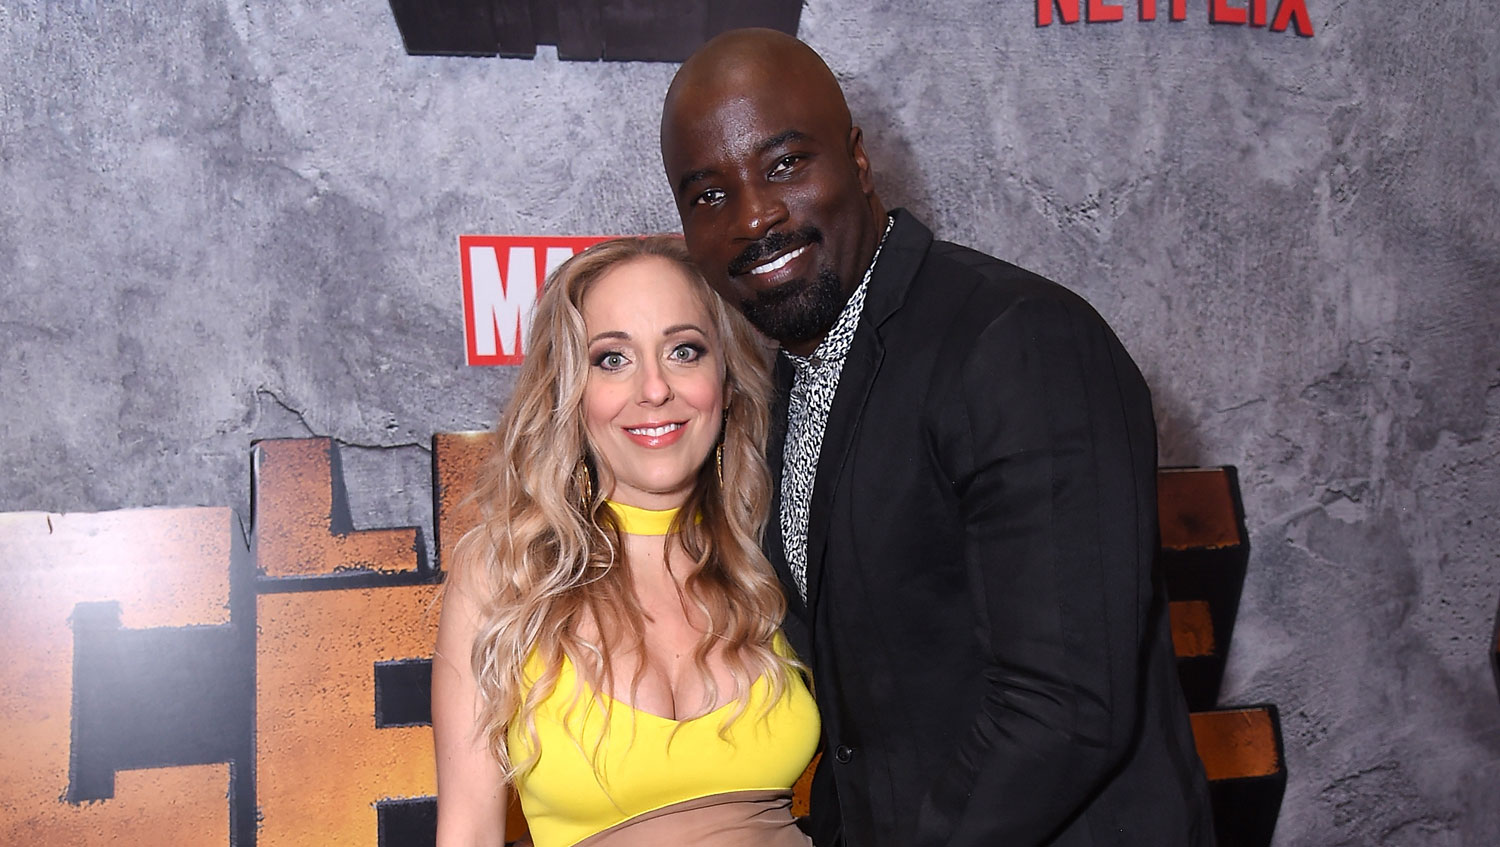 Luke Cage?s Mike Colter Expecting Baby with Wife Iva!